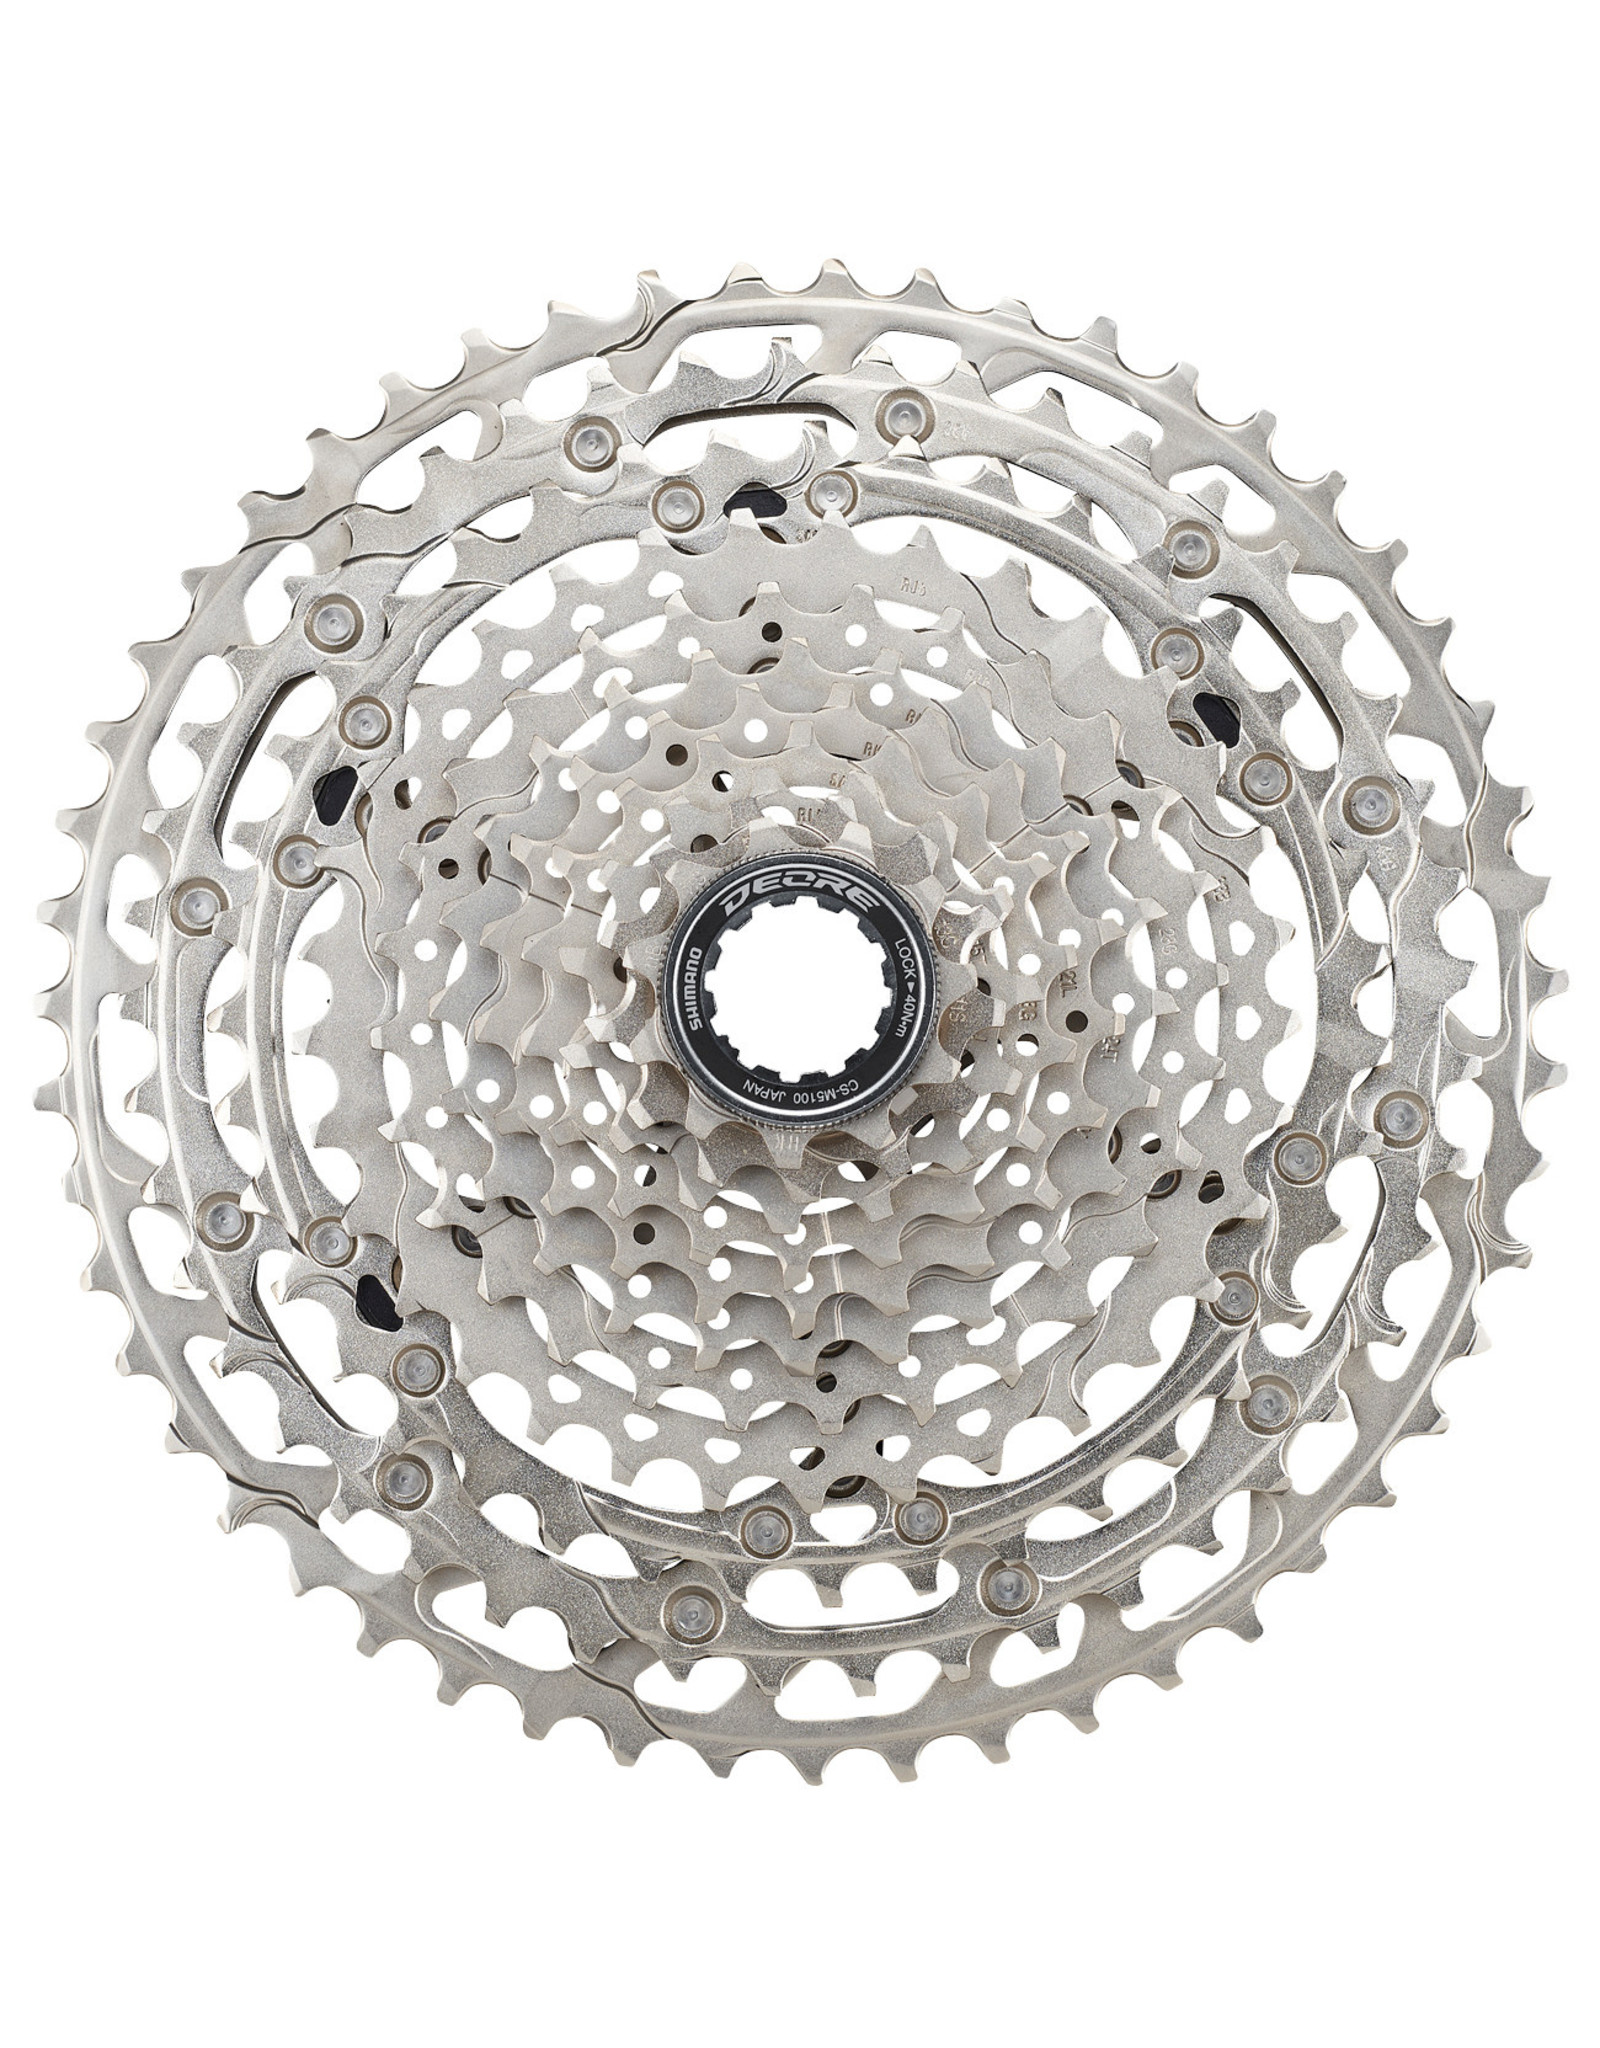 Shimano Shimano Deore CS-M5100-11 Cassette - 11-Speed, 11-51t, Silver